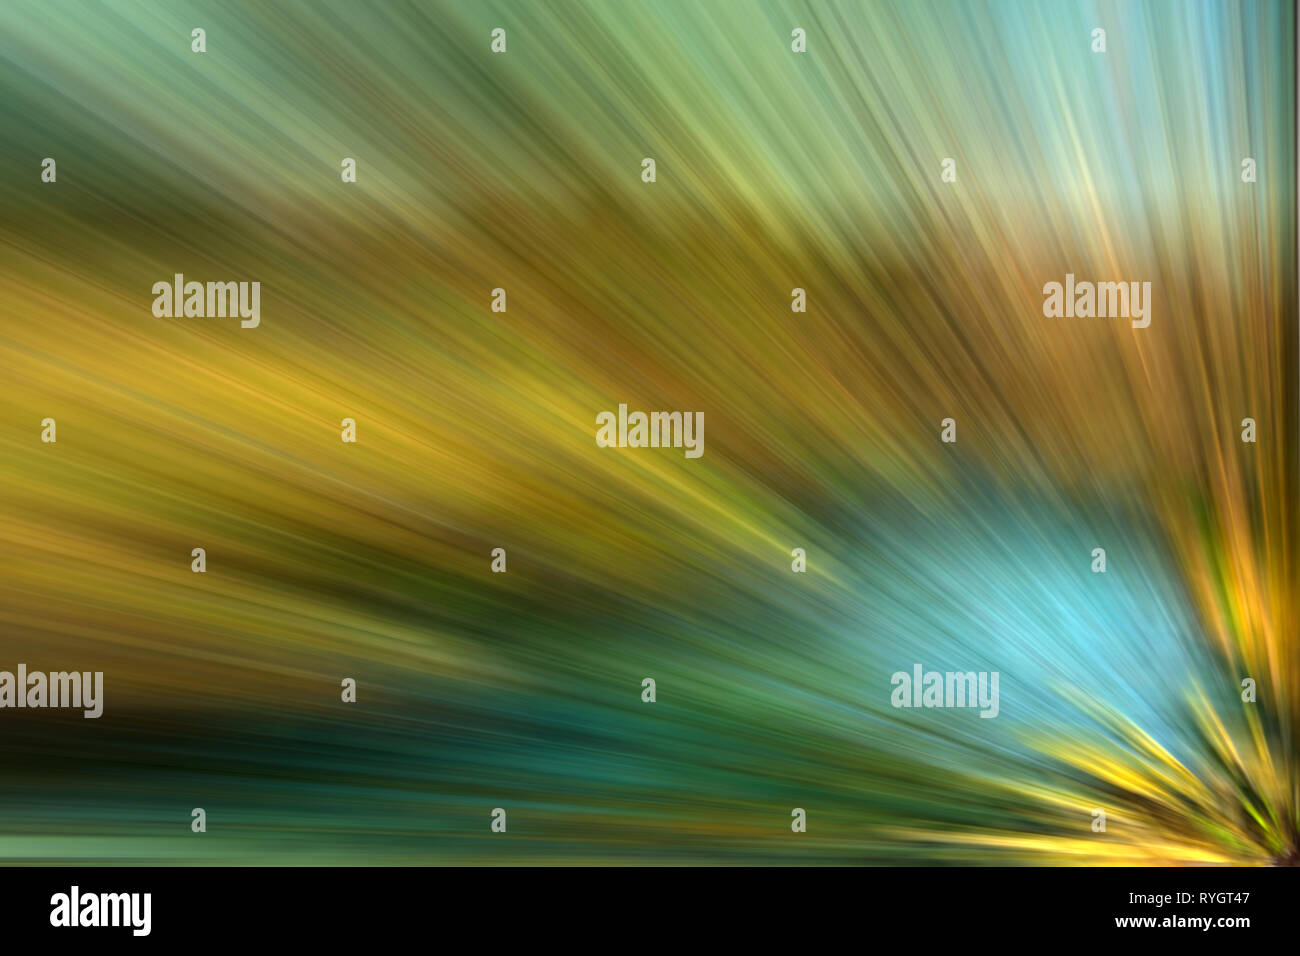 Colorful paper background varicolored various wallpaper walls - Stock Image